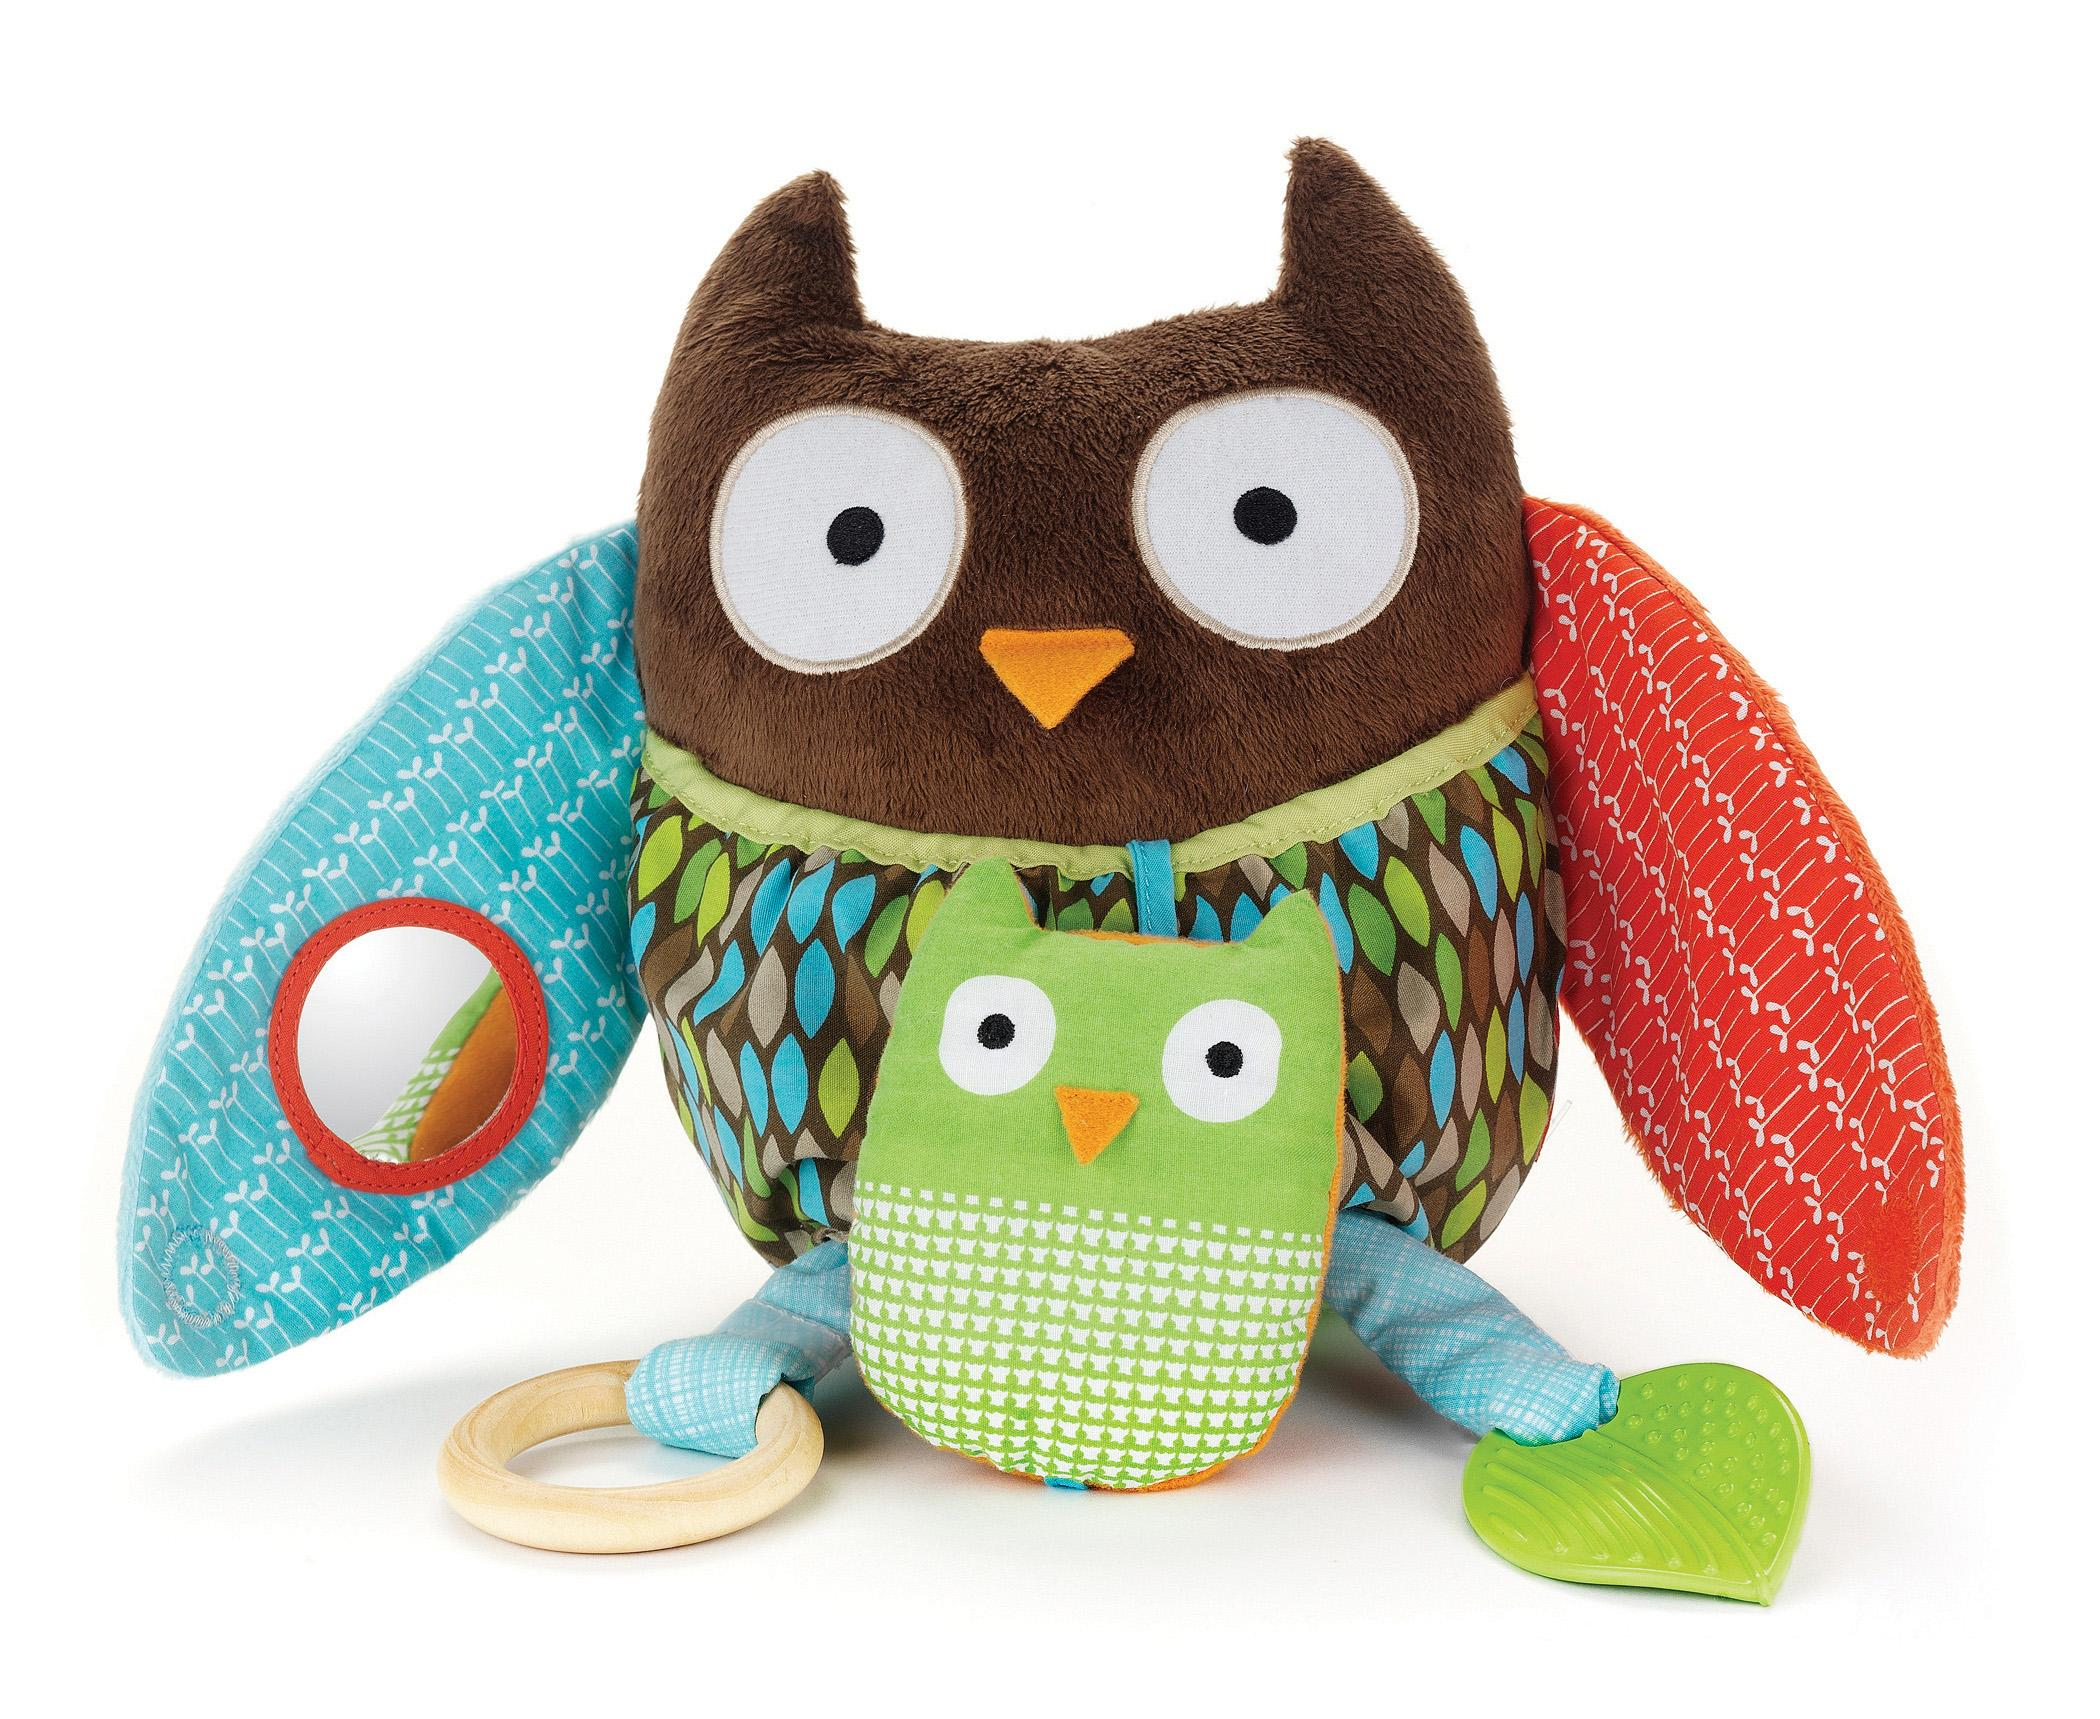 Baby Plush Toys : Amazon skip hop hug and hide activity toy owl